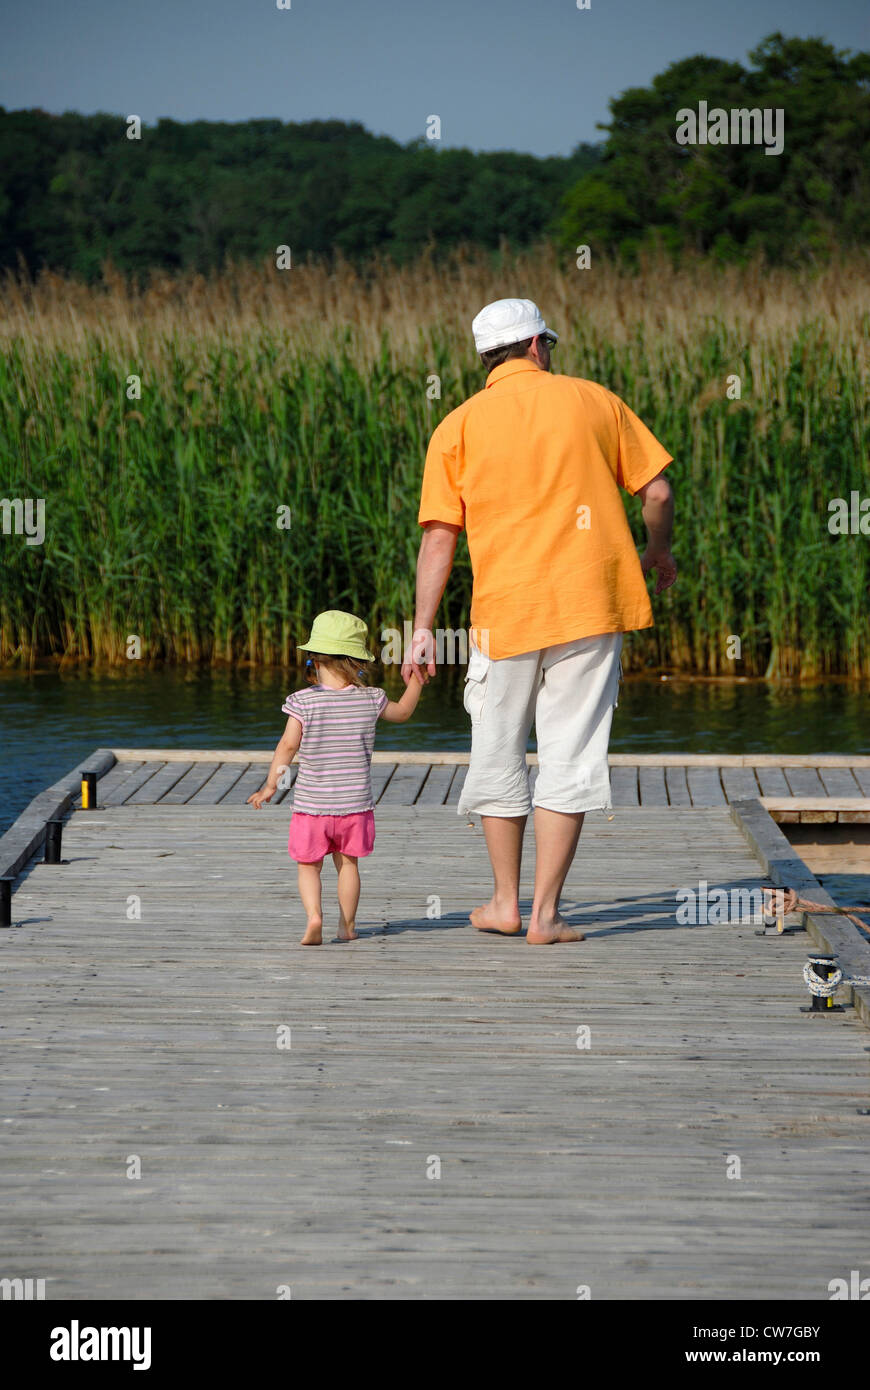 little child and grown up going about a boardwalk - Stock Image